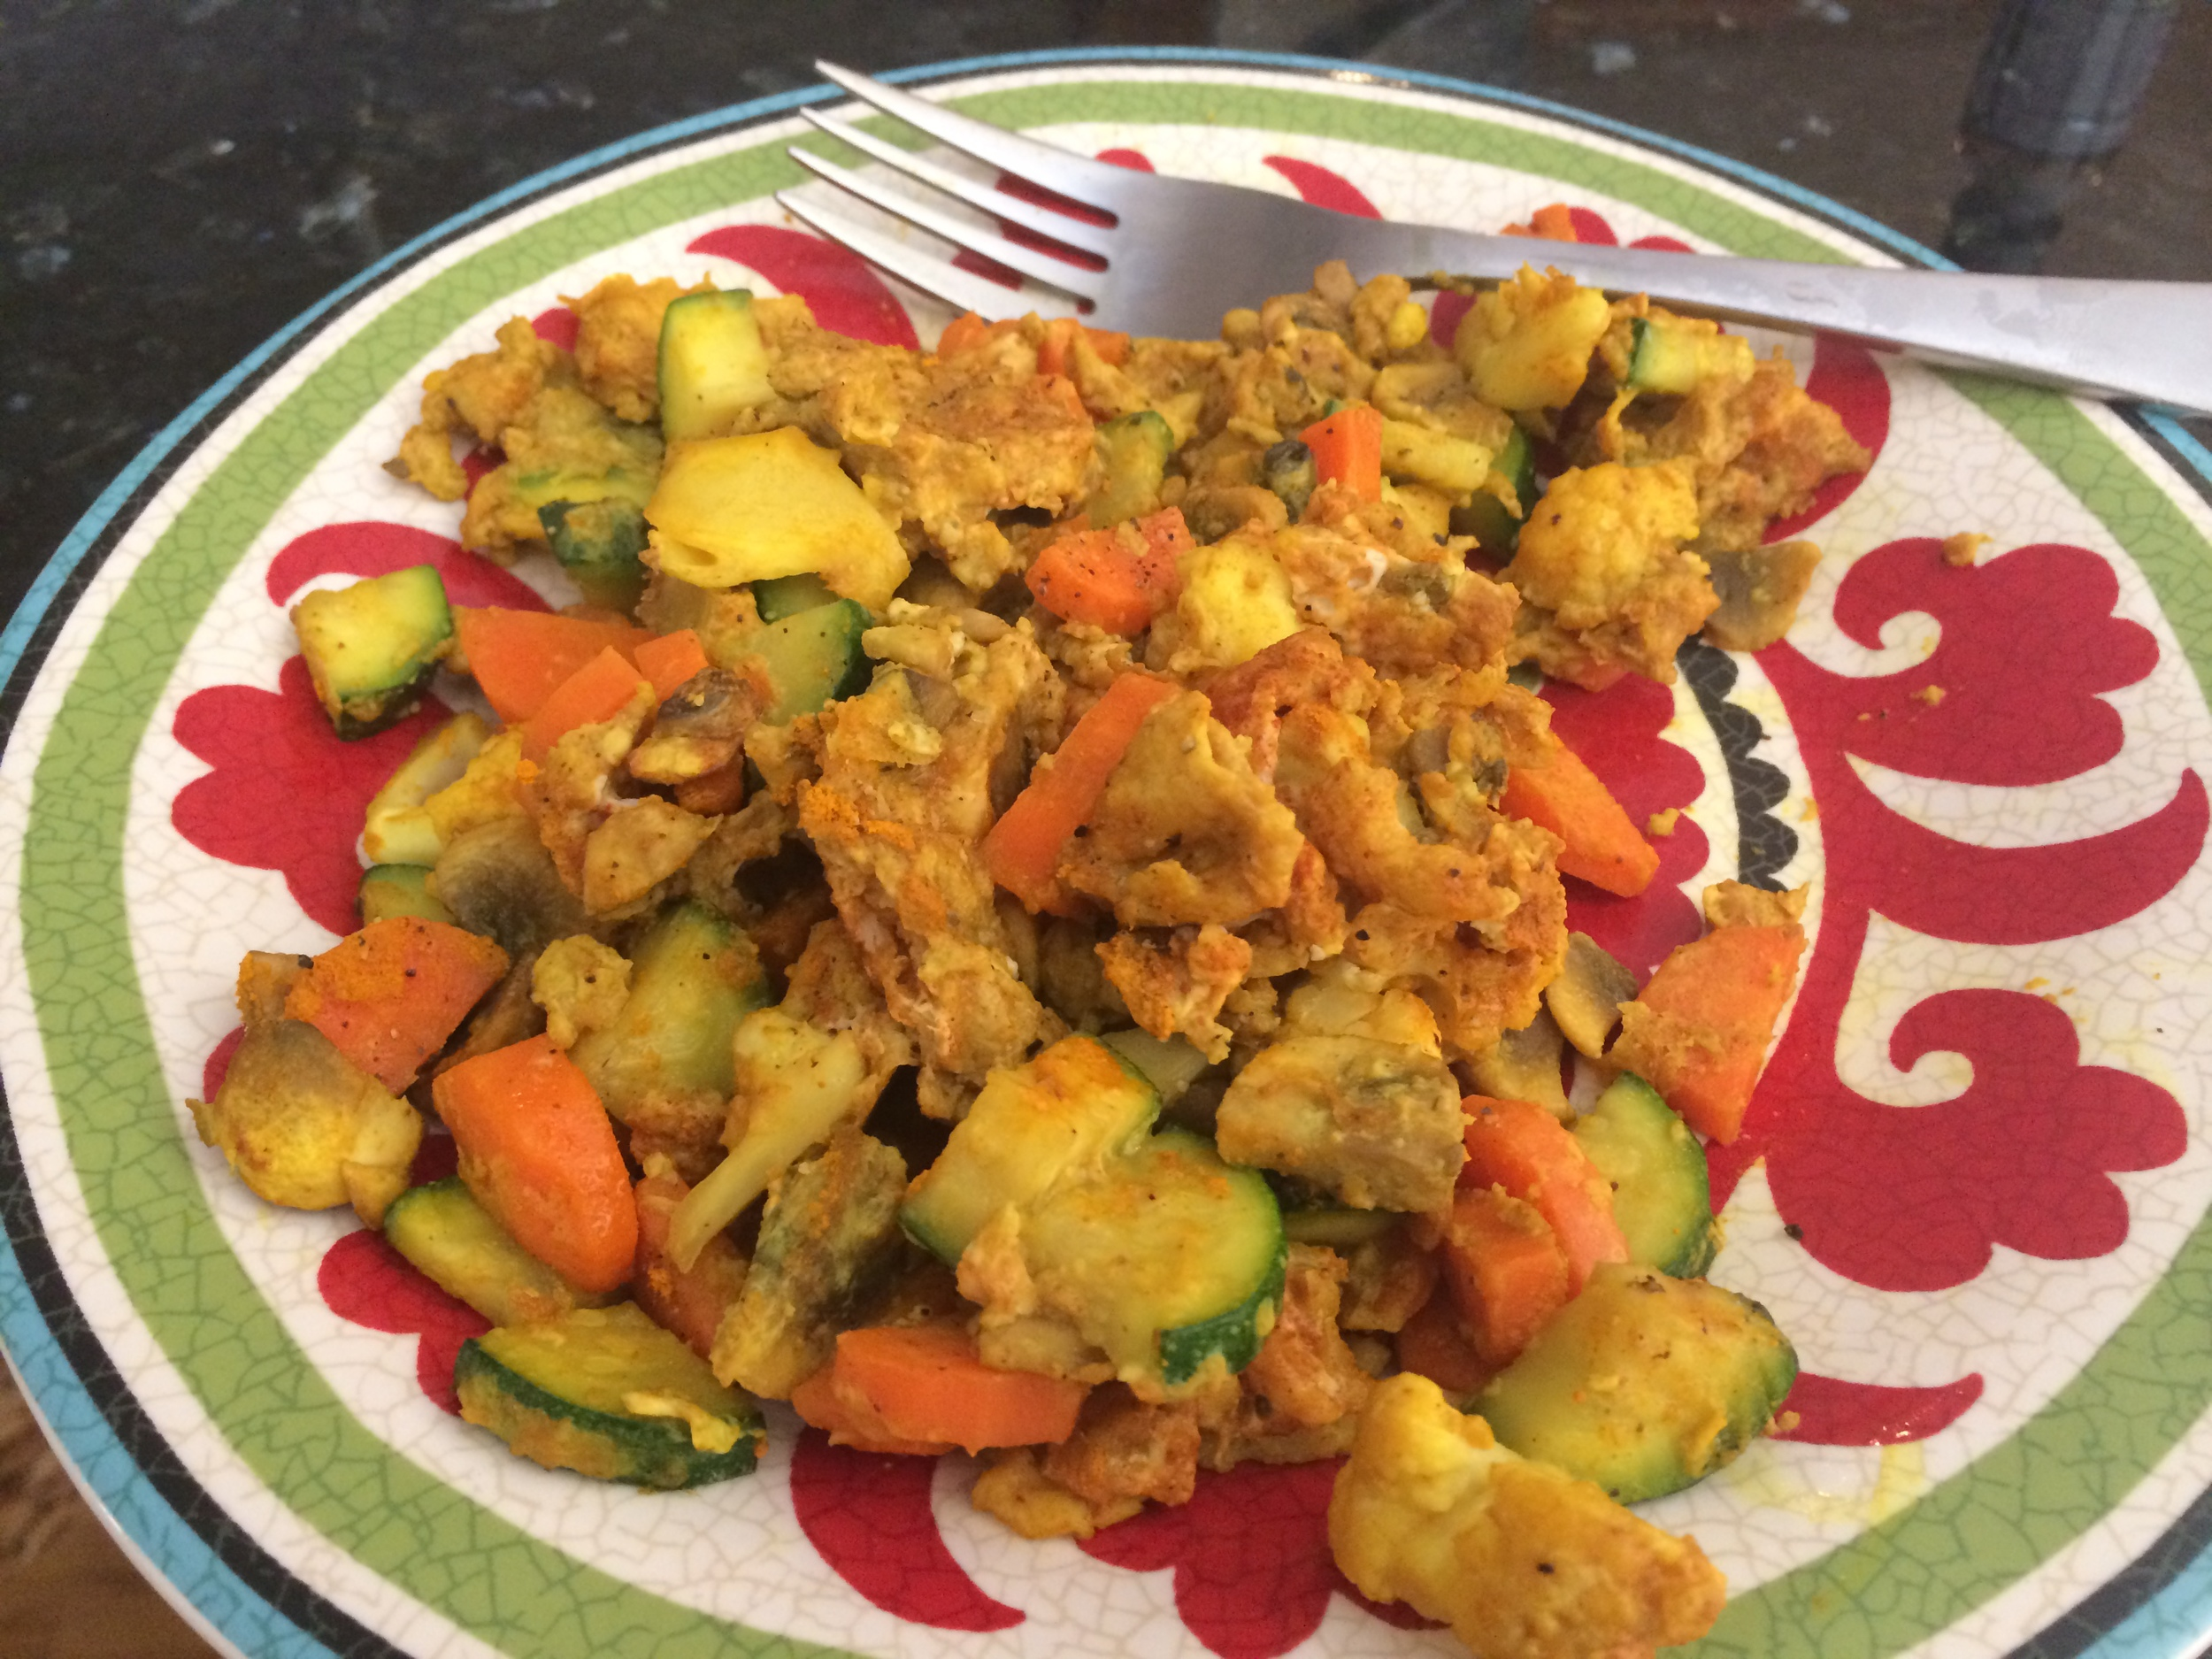 Breakfast - eggs cooked in pasture butter with vegetables and turmeric